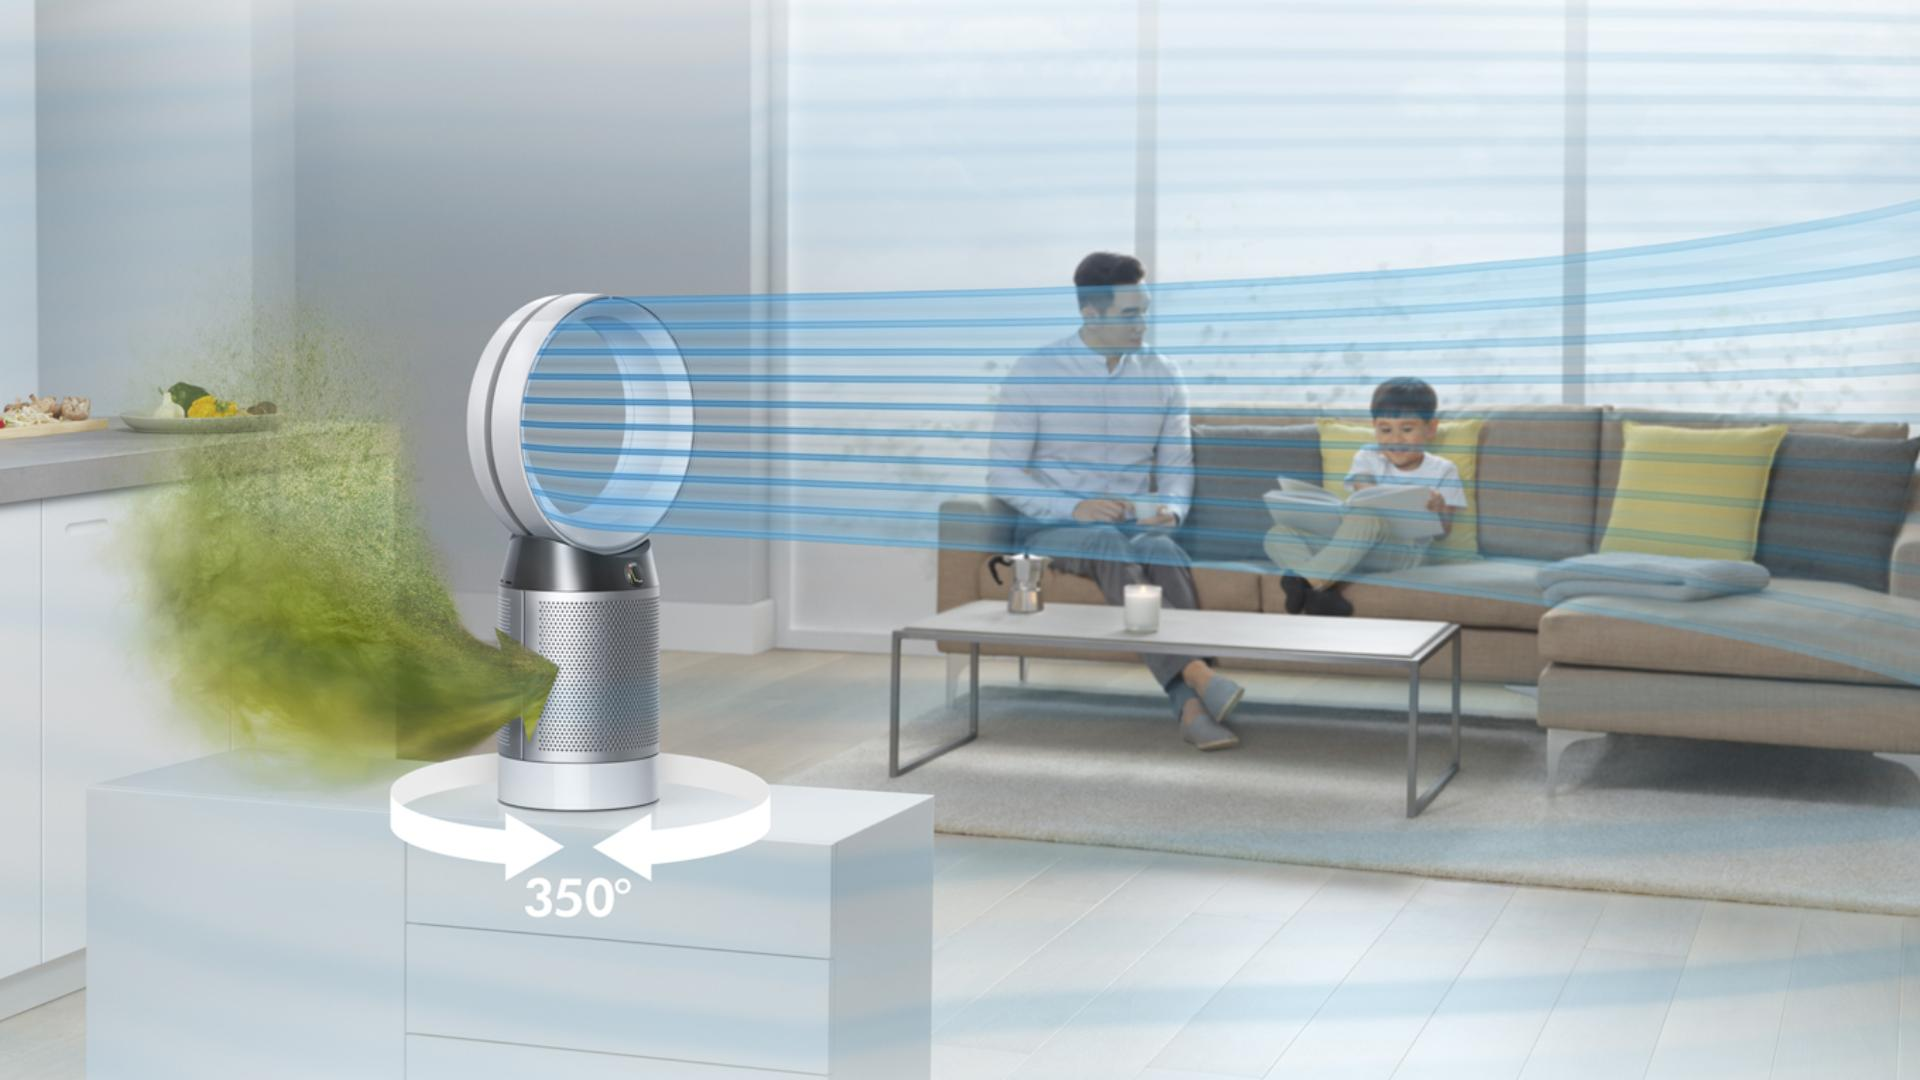 Dyson Pure Cool purifier in office space